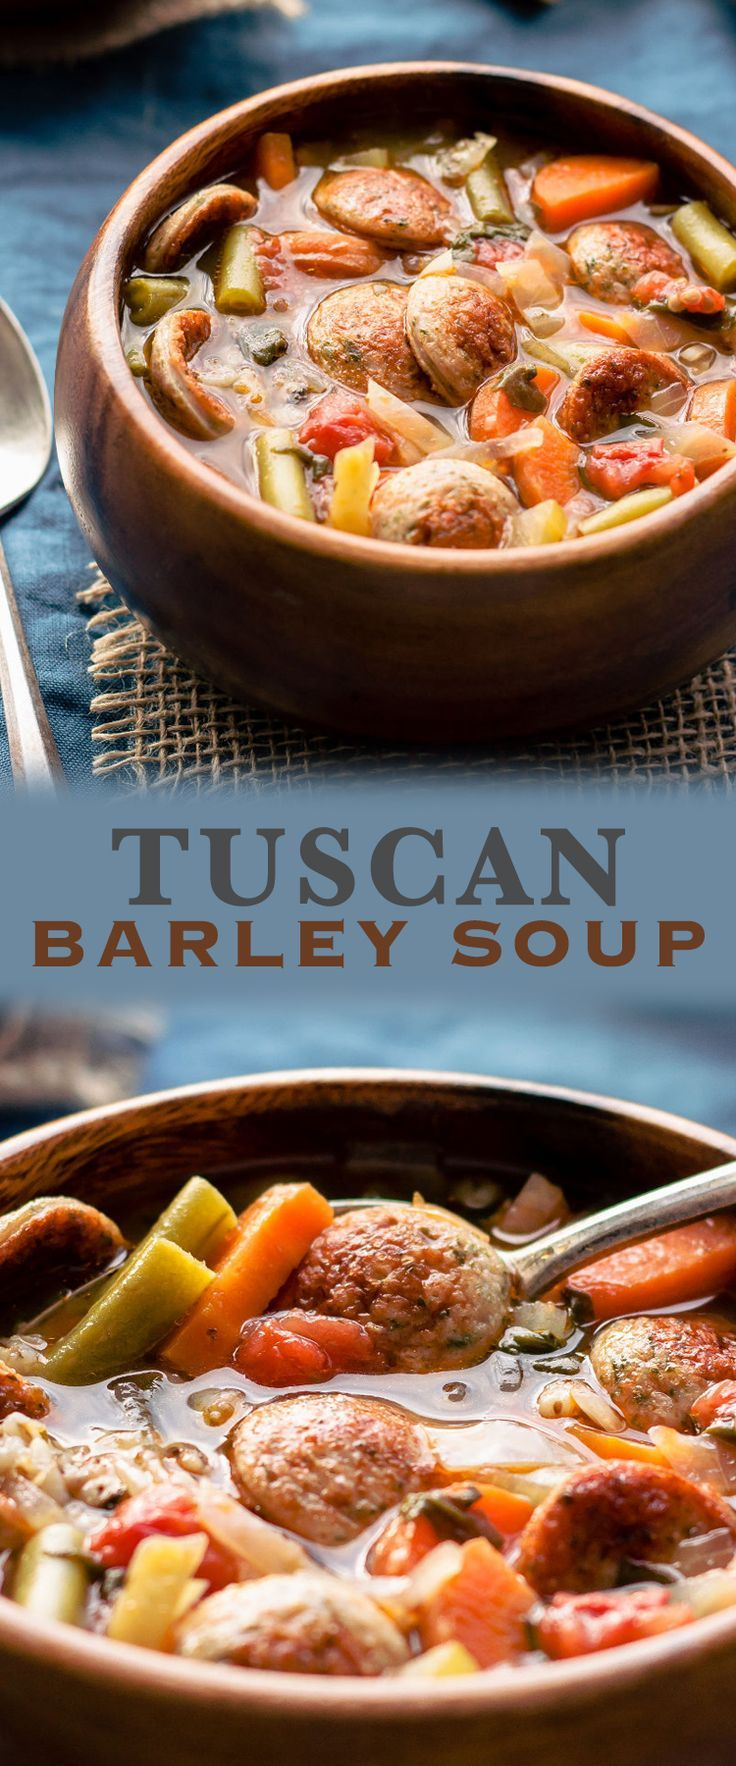 Delicious and healthy Tuscan Barley Soup - full of vegetables and low-fat turkey sausages, it's very easy to make and ready within 60 minutes.